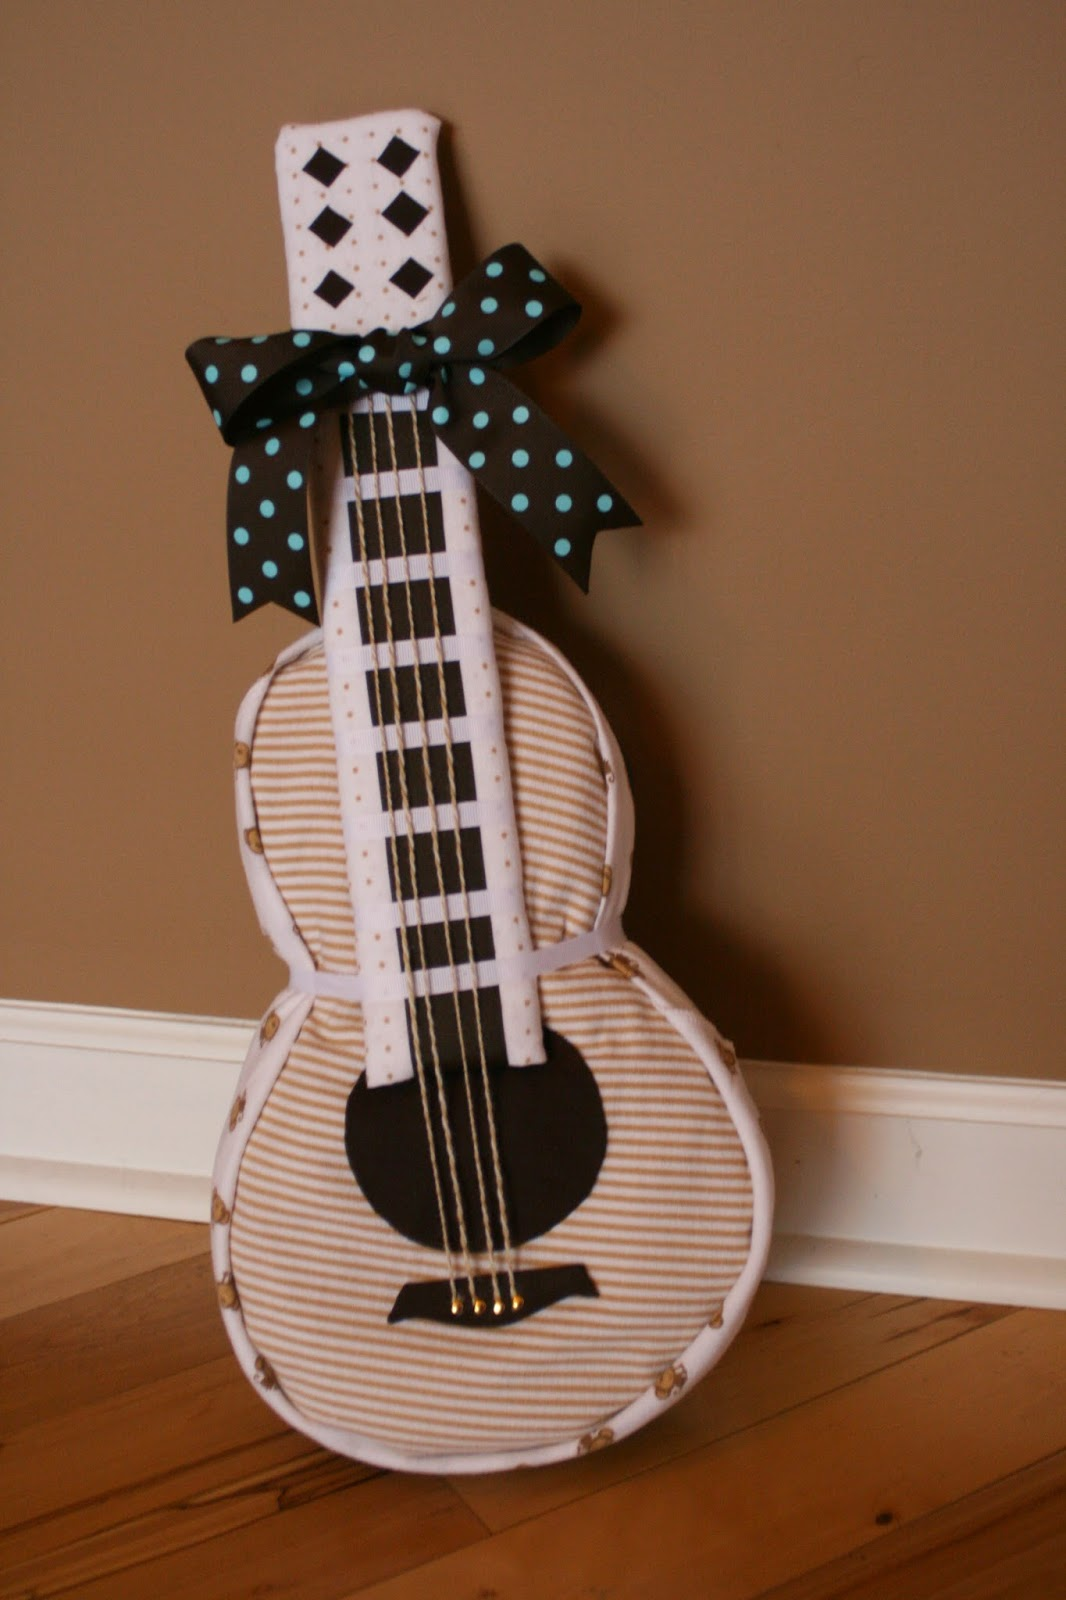 polka dot pix gal guitar diaper cake for baby jack. Black Bedroom Furniture Sets. Home Design Ideas